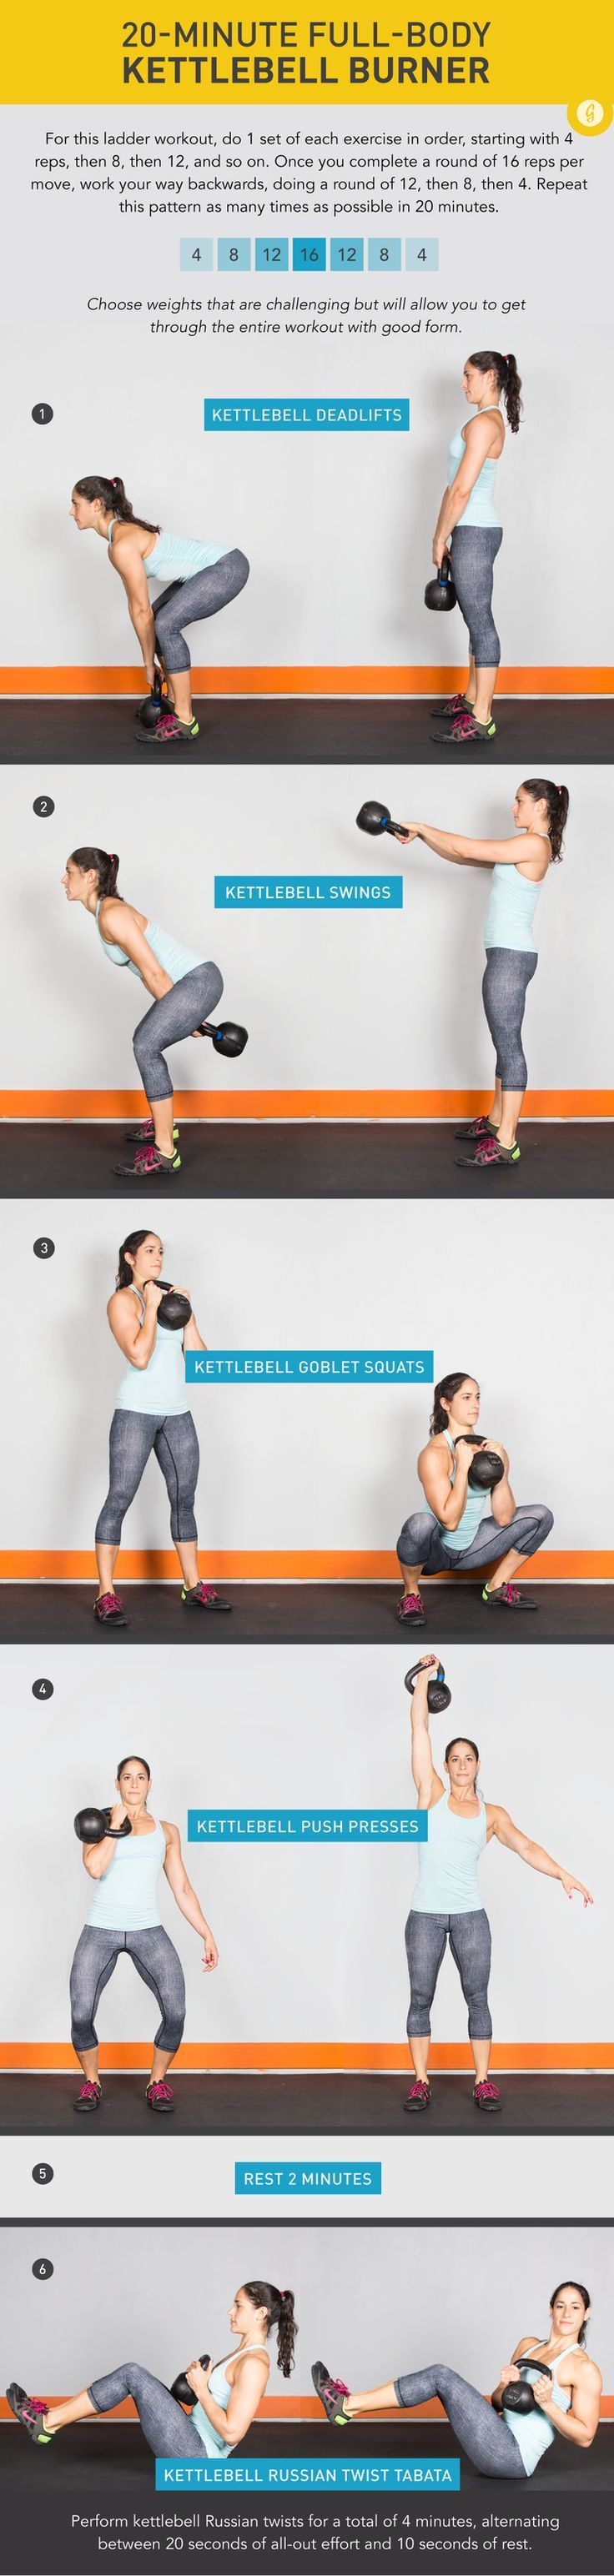 20 Minute Full-Body Kettlebell Burner #health #fitness #kettlebell